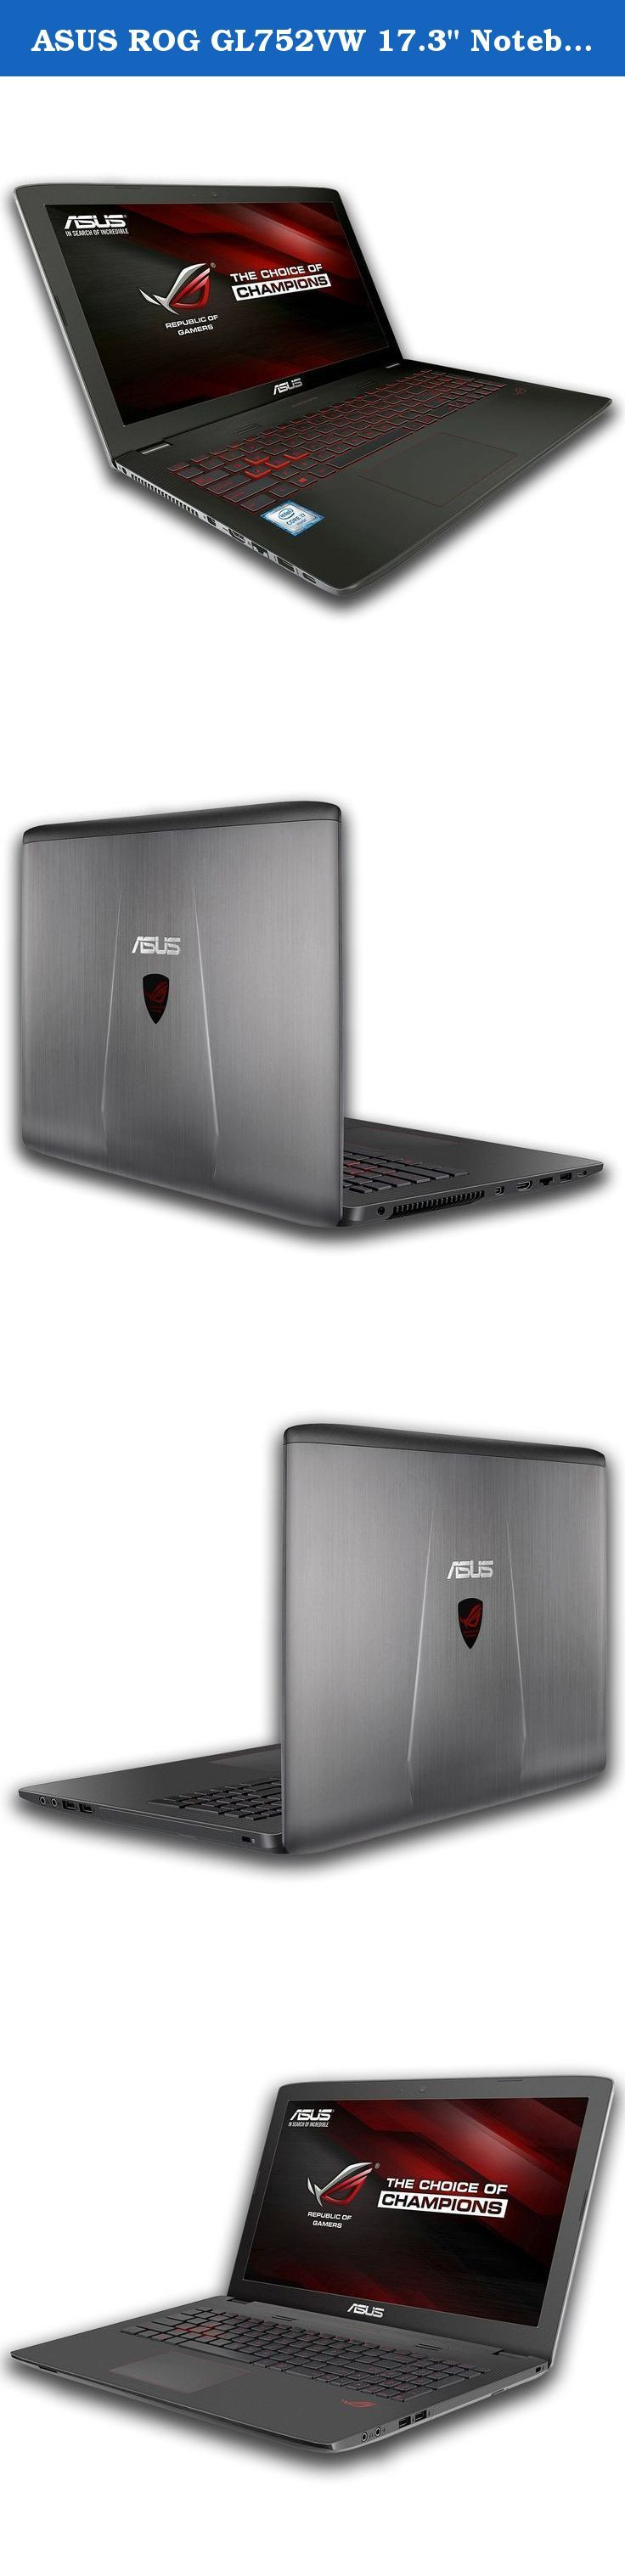 """ASUS ROG GL752VW 17.3"""" Notebook for Gamers (Intel Core Skylake i7-6700HQ, 16GB RAM, 120GB SSD + 1TB HDD, NVIDIA GTX 960M 4GB) - Best Full HD Windows 10 Gaming Laptop Computer. ASUS ROG GL752VW is powered by a 6th generation Intel Core i7 quad-core processor, with a discrete NVIDIA GTX 960 graphics card with Full DirectX 12 support. The GL752VW stays true to the Republic of Gamers line, with F-22 stealth fighter-inspired lines and angled surfaces for a dynamic and powerful stance. The…"""